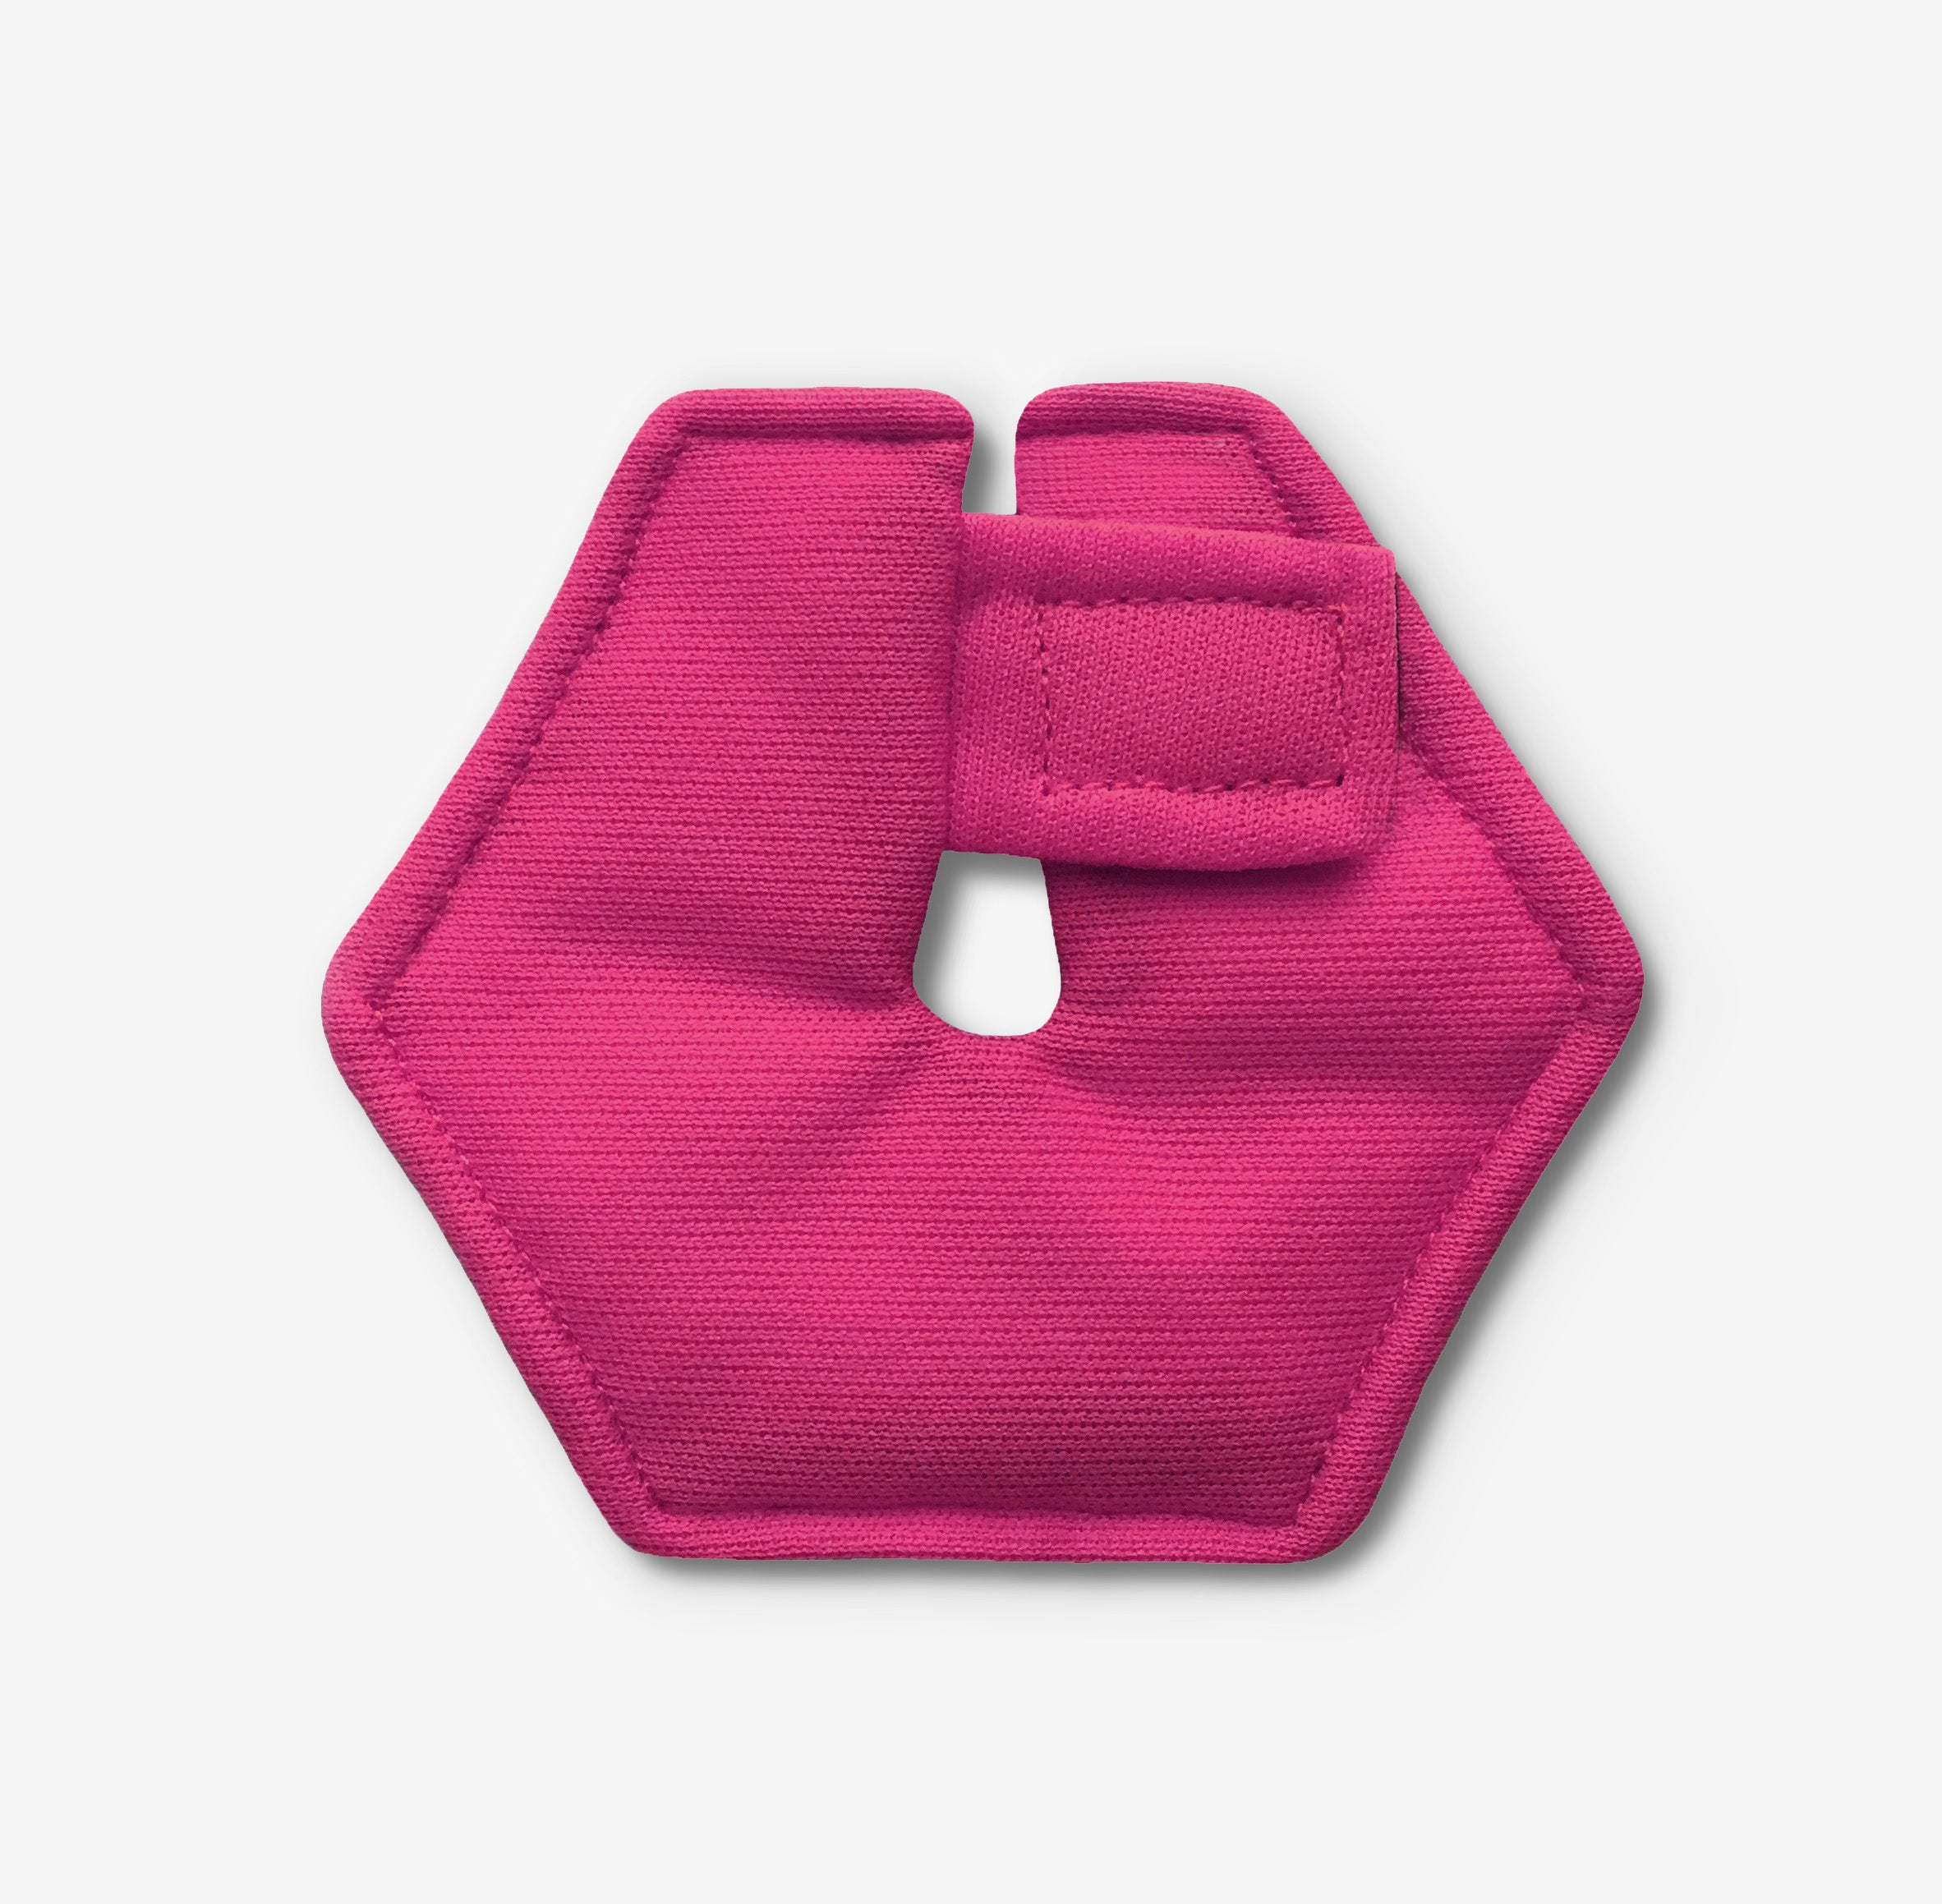 Hexagonal feeding tube pad in pink color